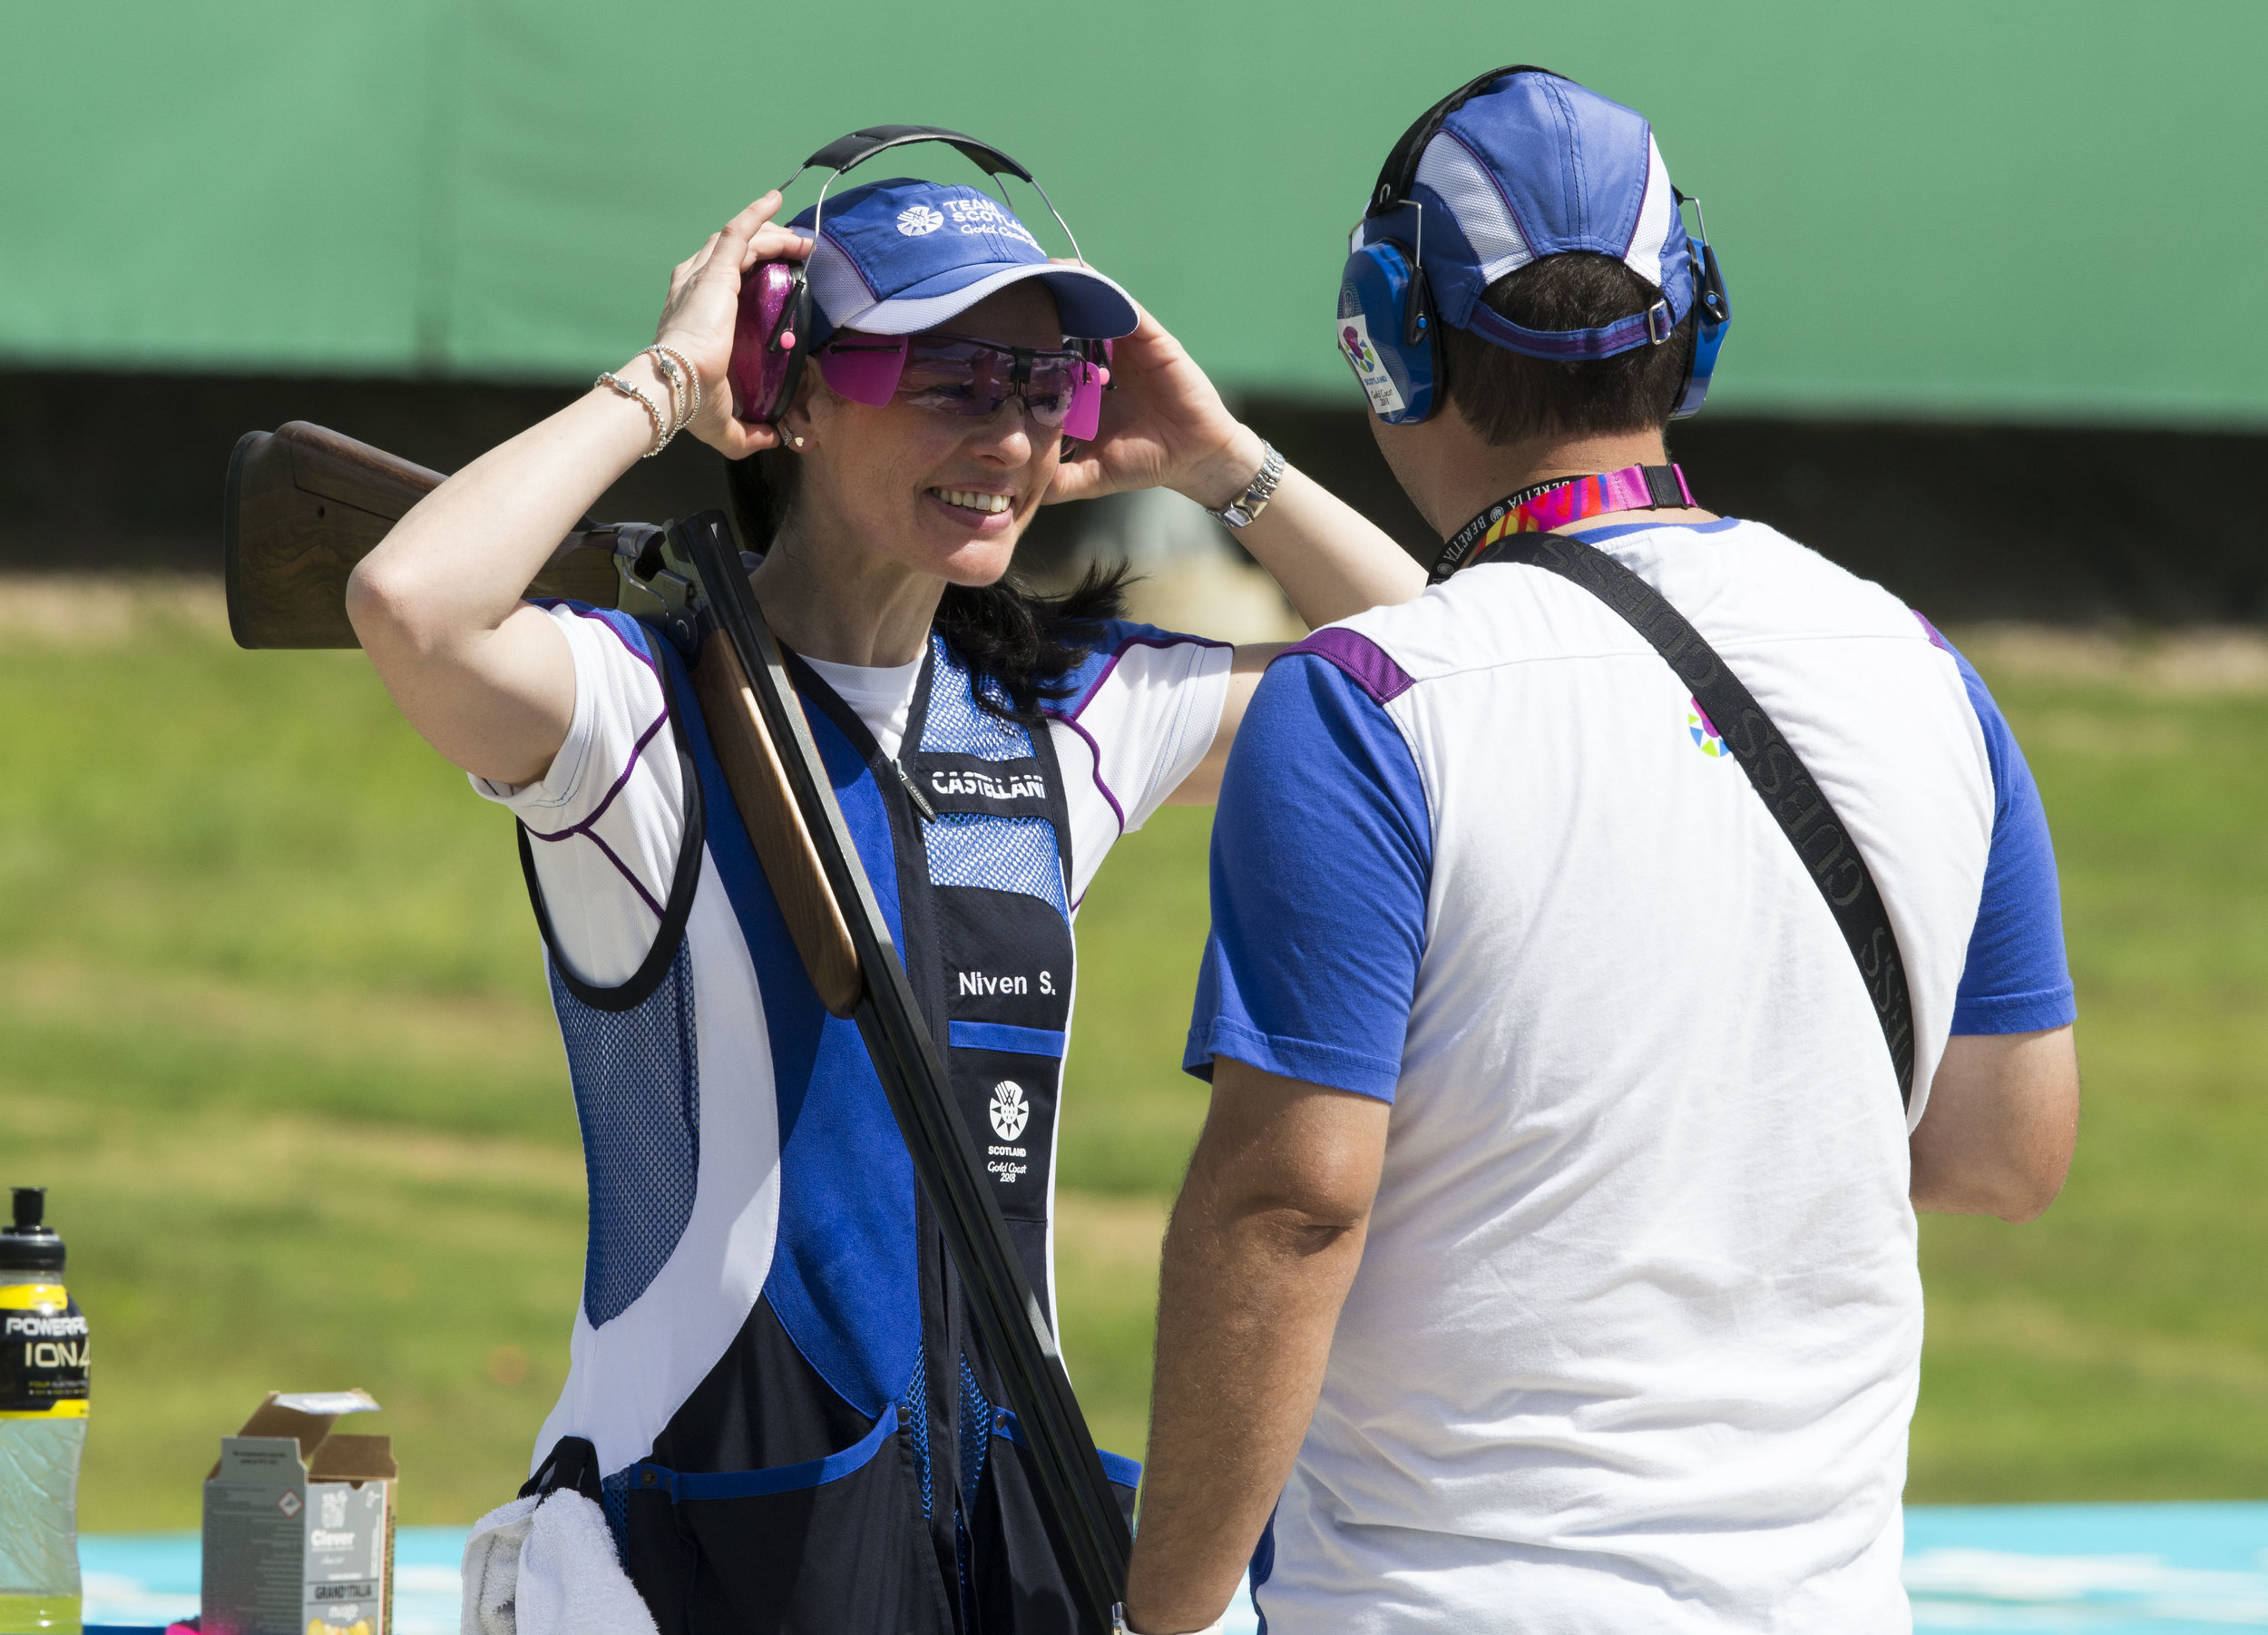 Sharon will be looking to emulate Linda's success in the Women's Skeet tomorrow